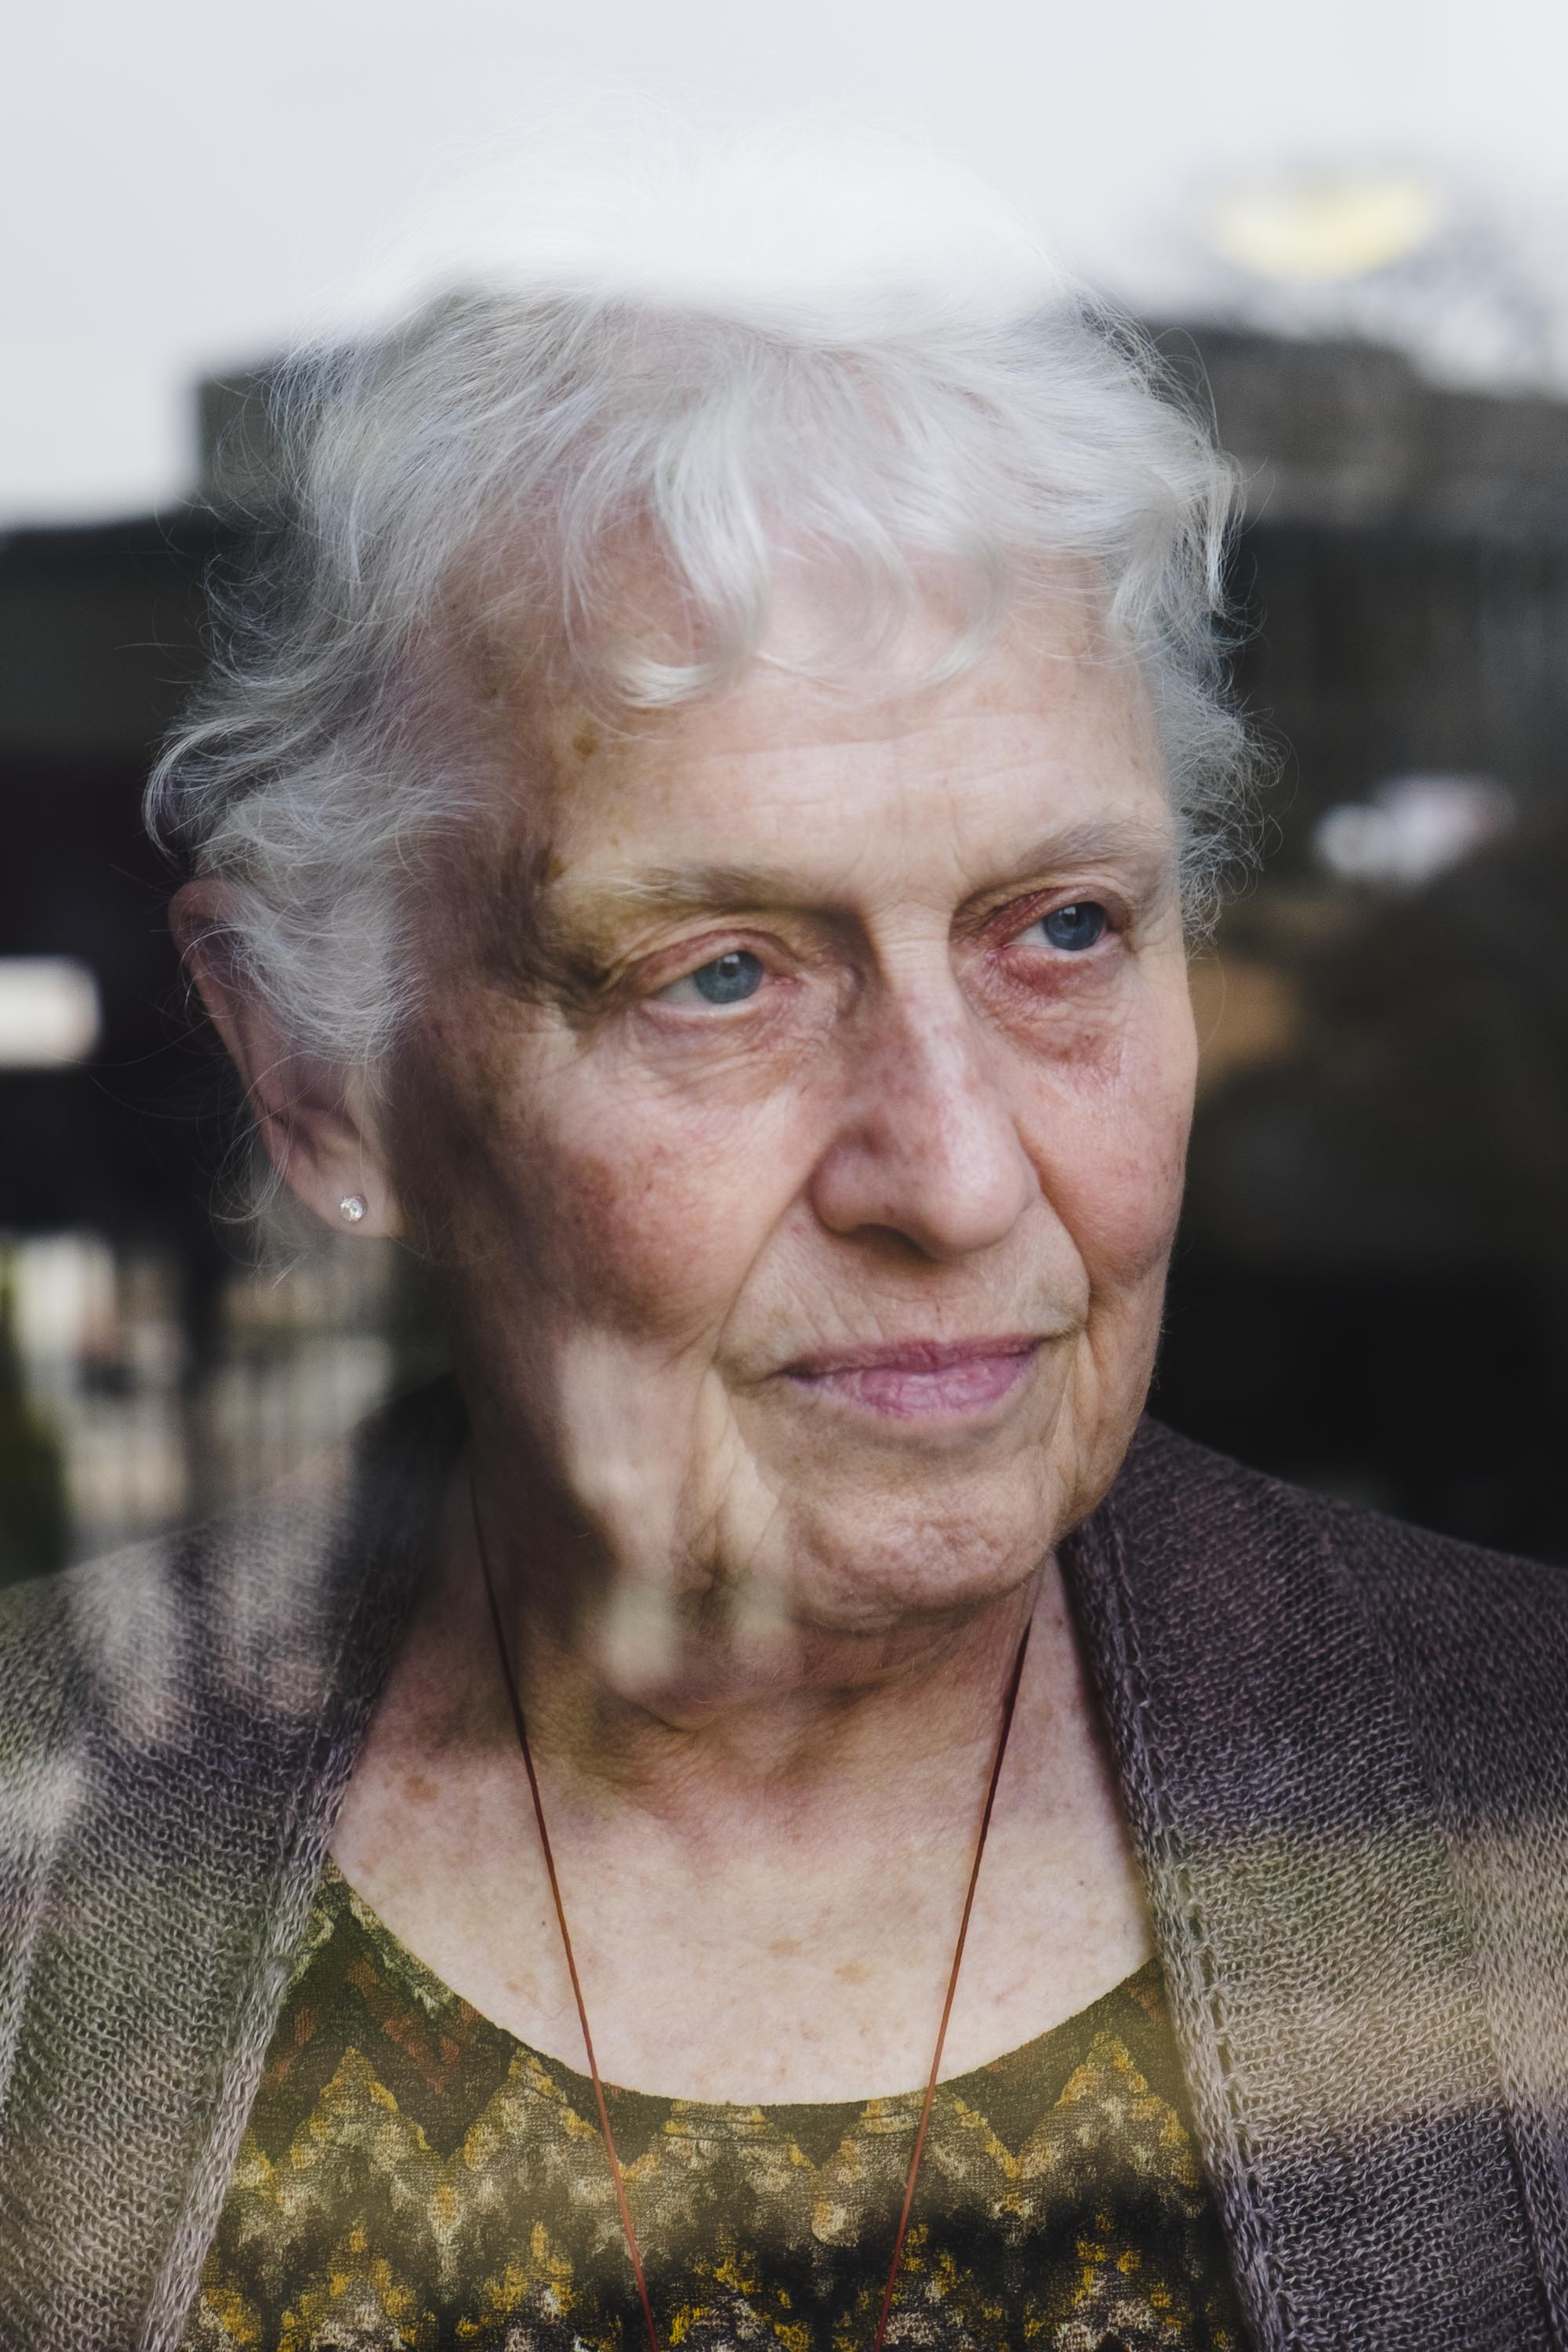 Susan Alitto, one of the founding members of the Chicago Hyde Park Village, an organization that aims to keep older adults involved in the community and battle loneliness.